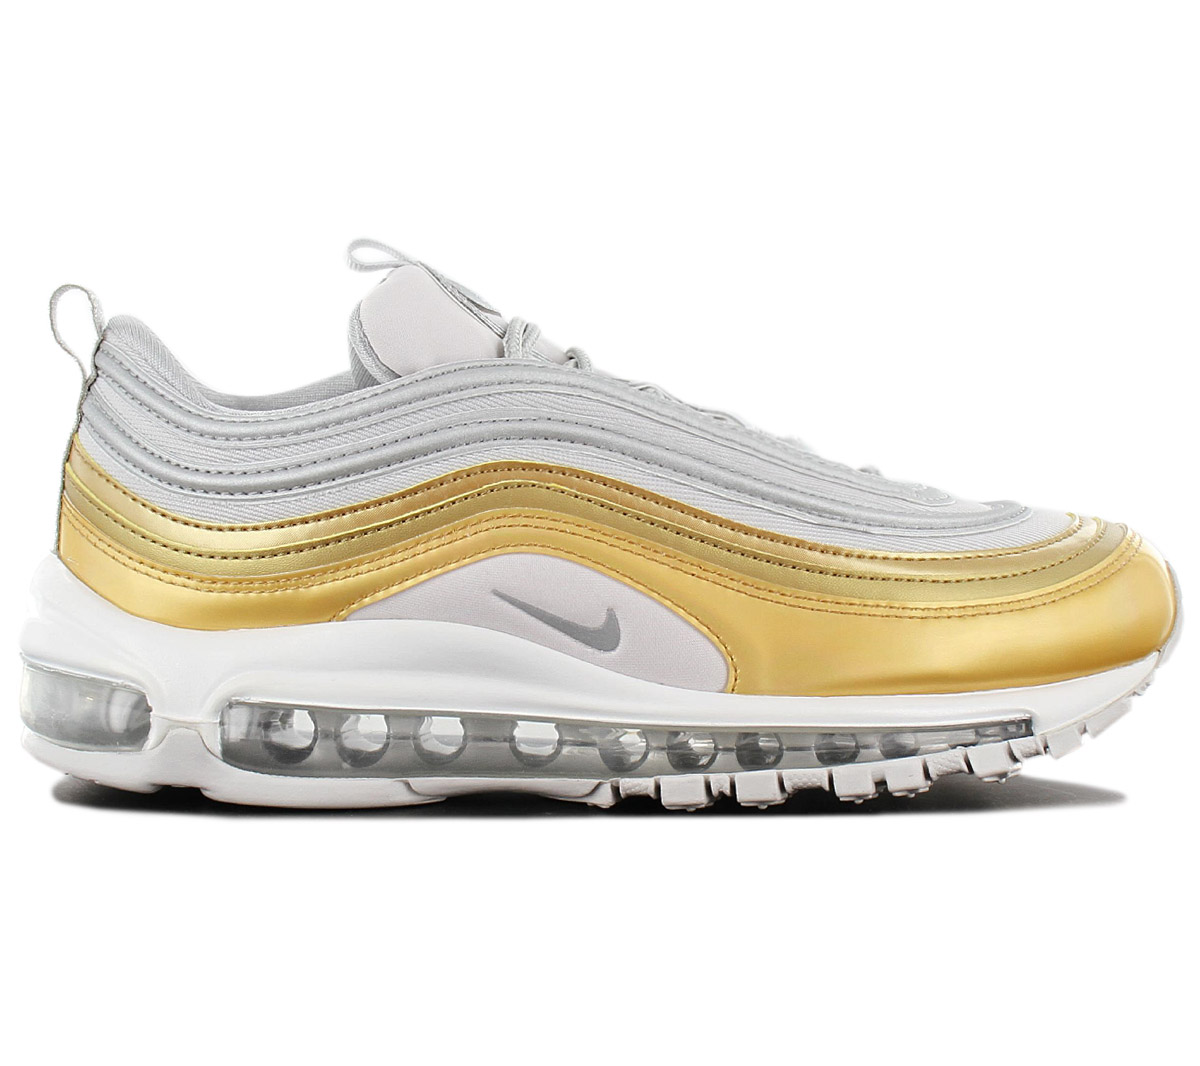 quality design bc869 9dd4f Nike Air Max 97 Se Special Edition Women s Sneakers Silver-Gold ...